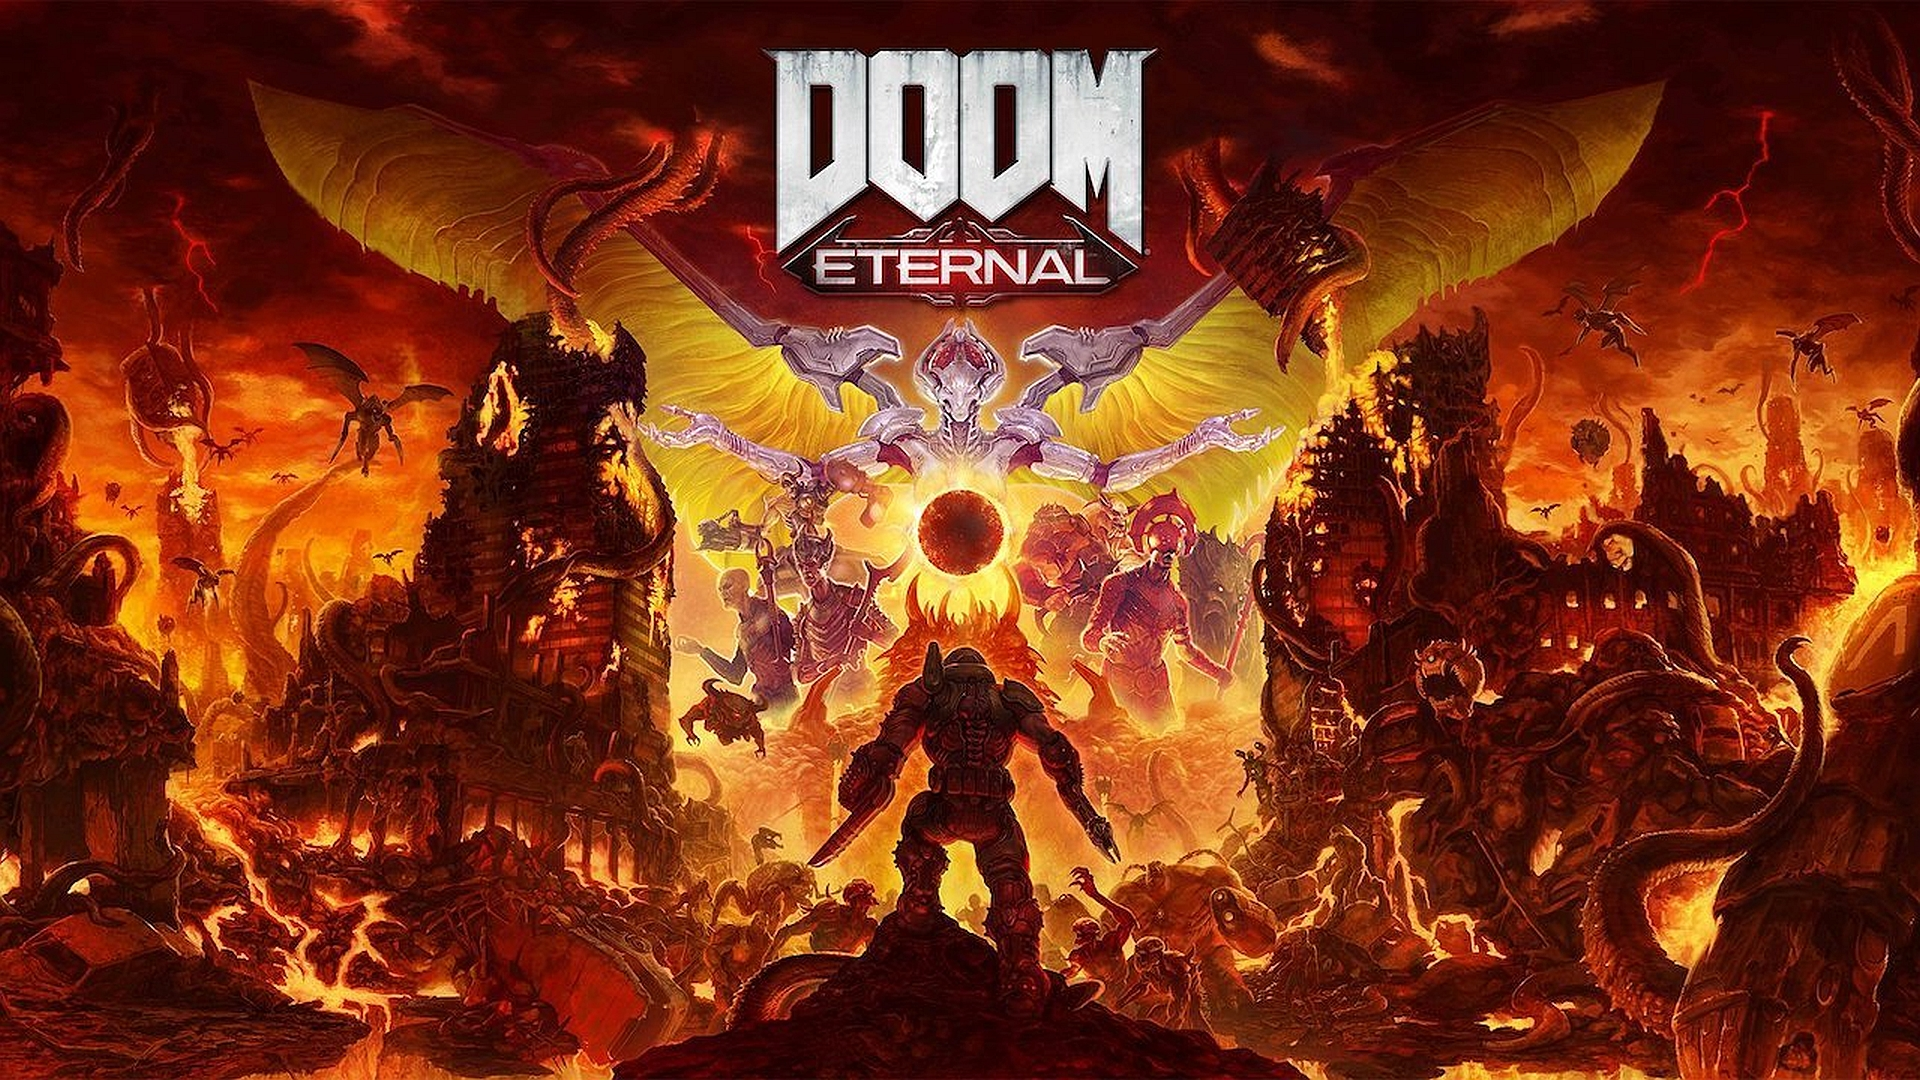 Games Coming Out In March 2020.Doom Eternal Delayed To March 2020 Invasion Mode To Come